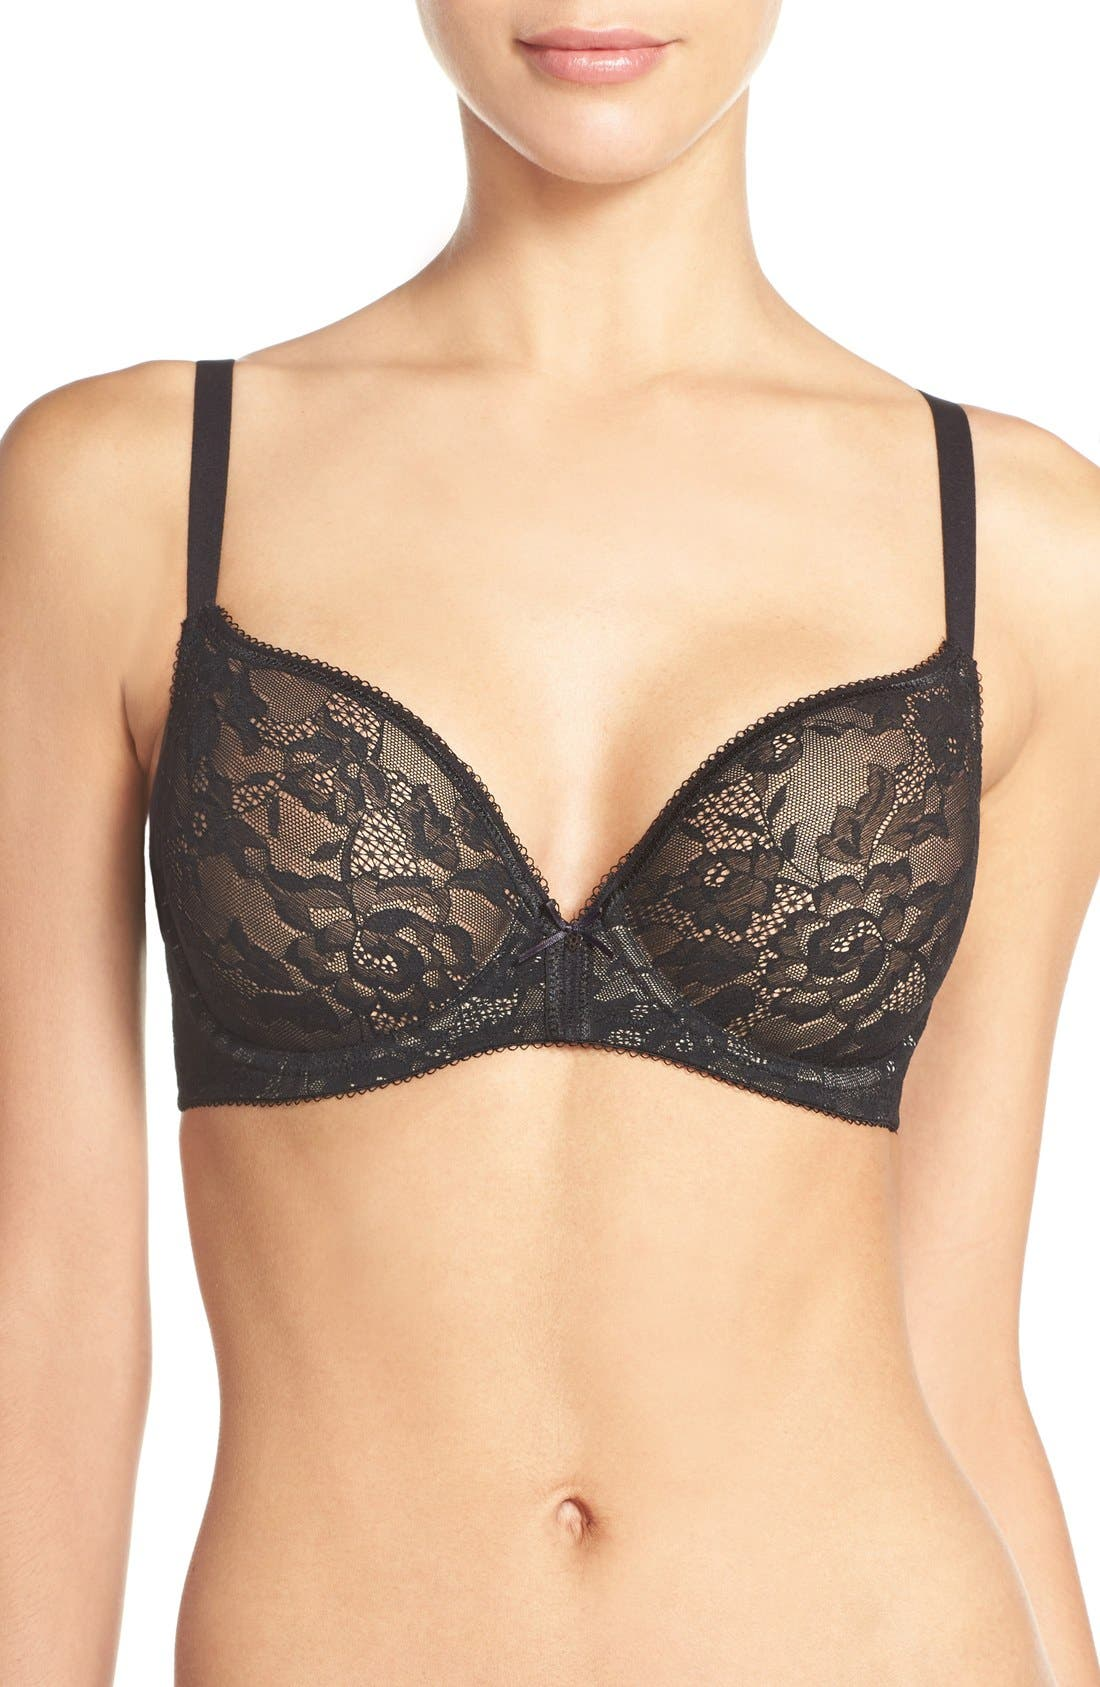 Alternate Image 1 Selected - Wacoal 'Finesse' Molded Underwire T-Shirt Bra